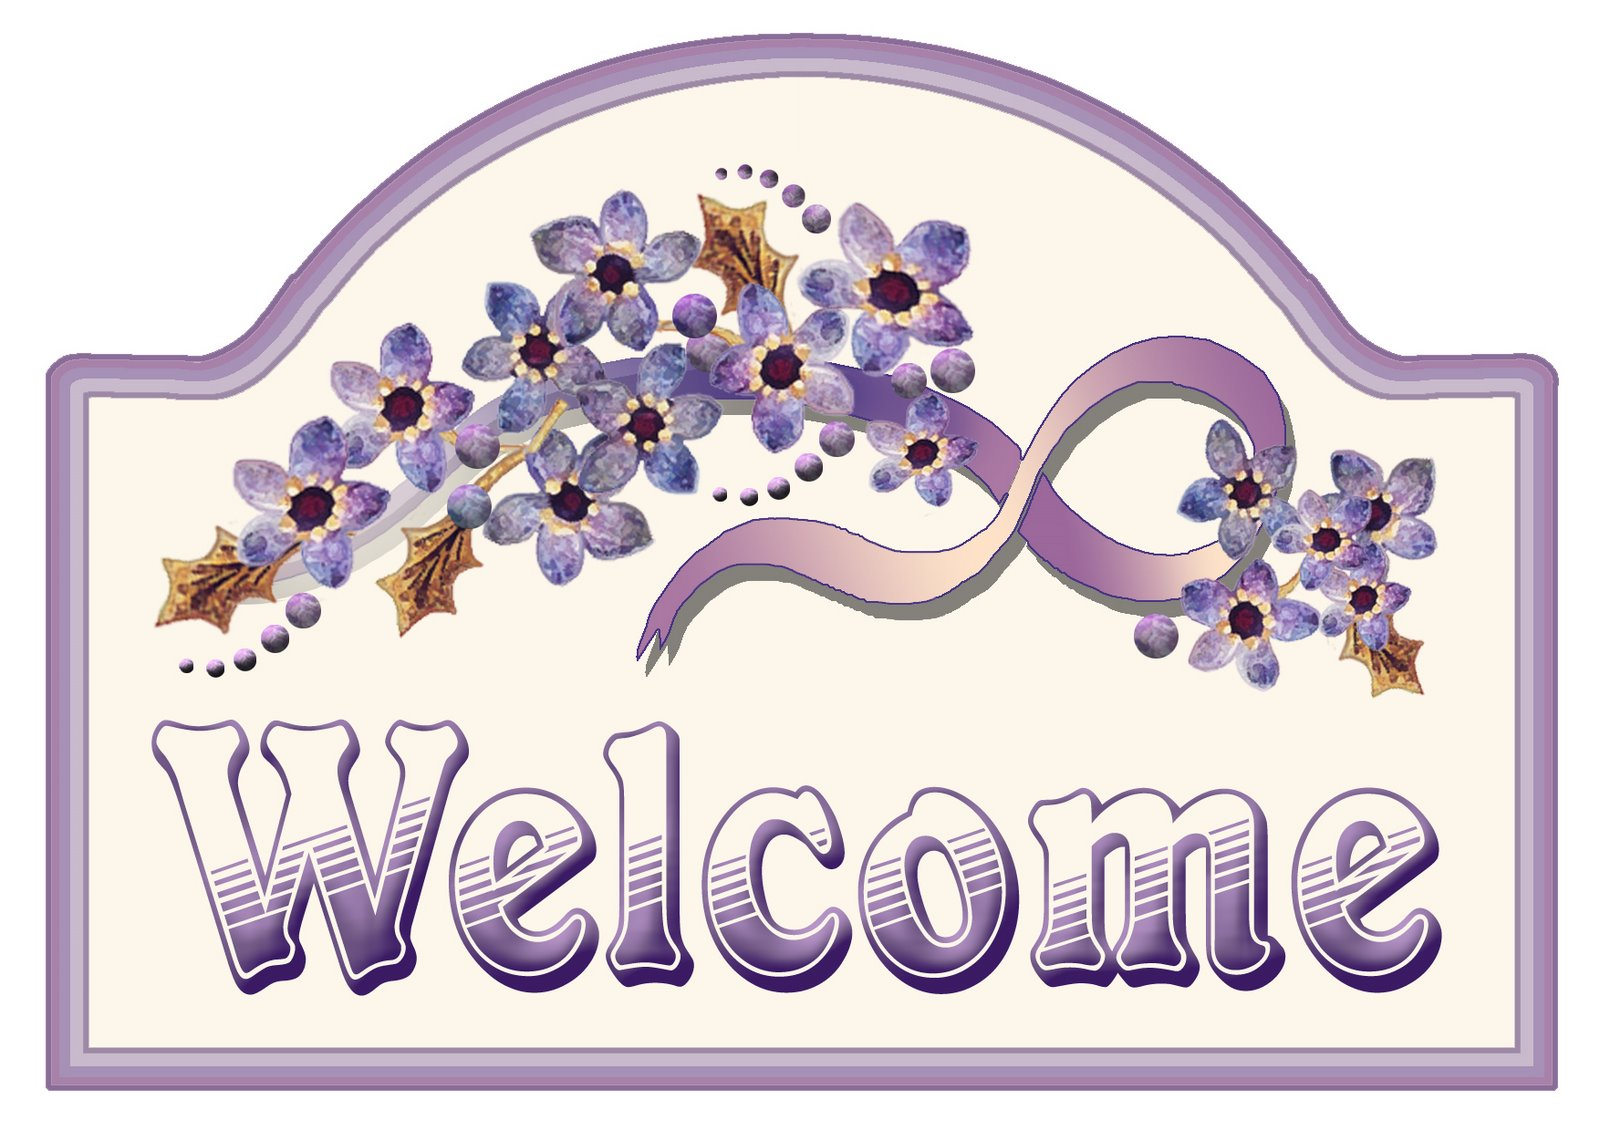 Free welcome clip art images clipart image 1 2.